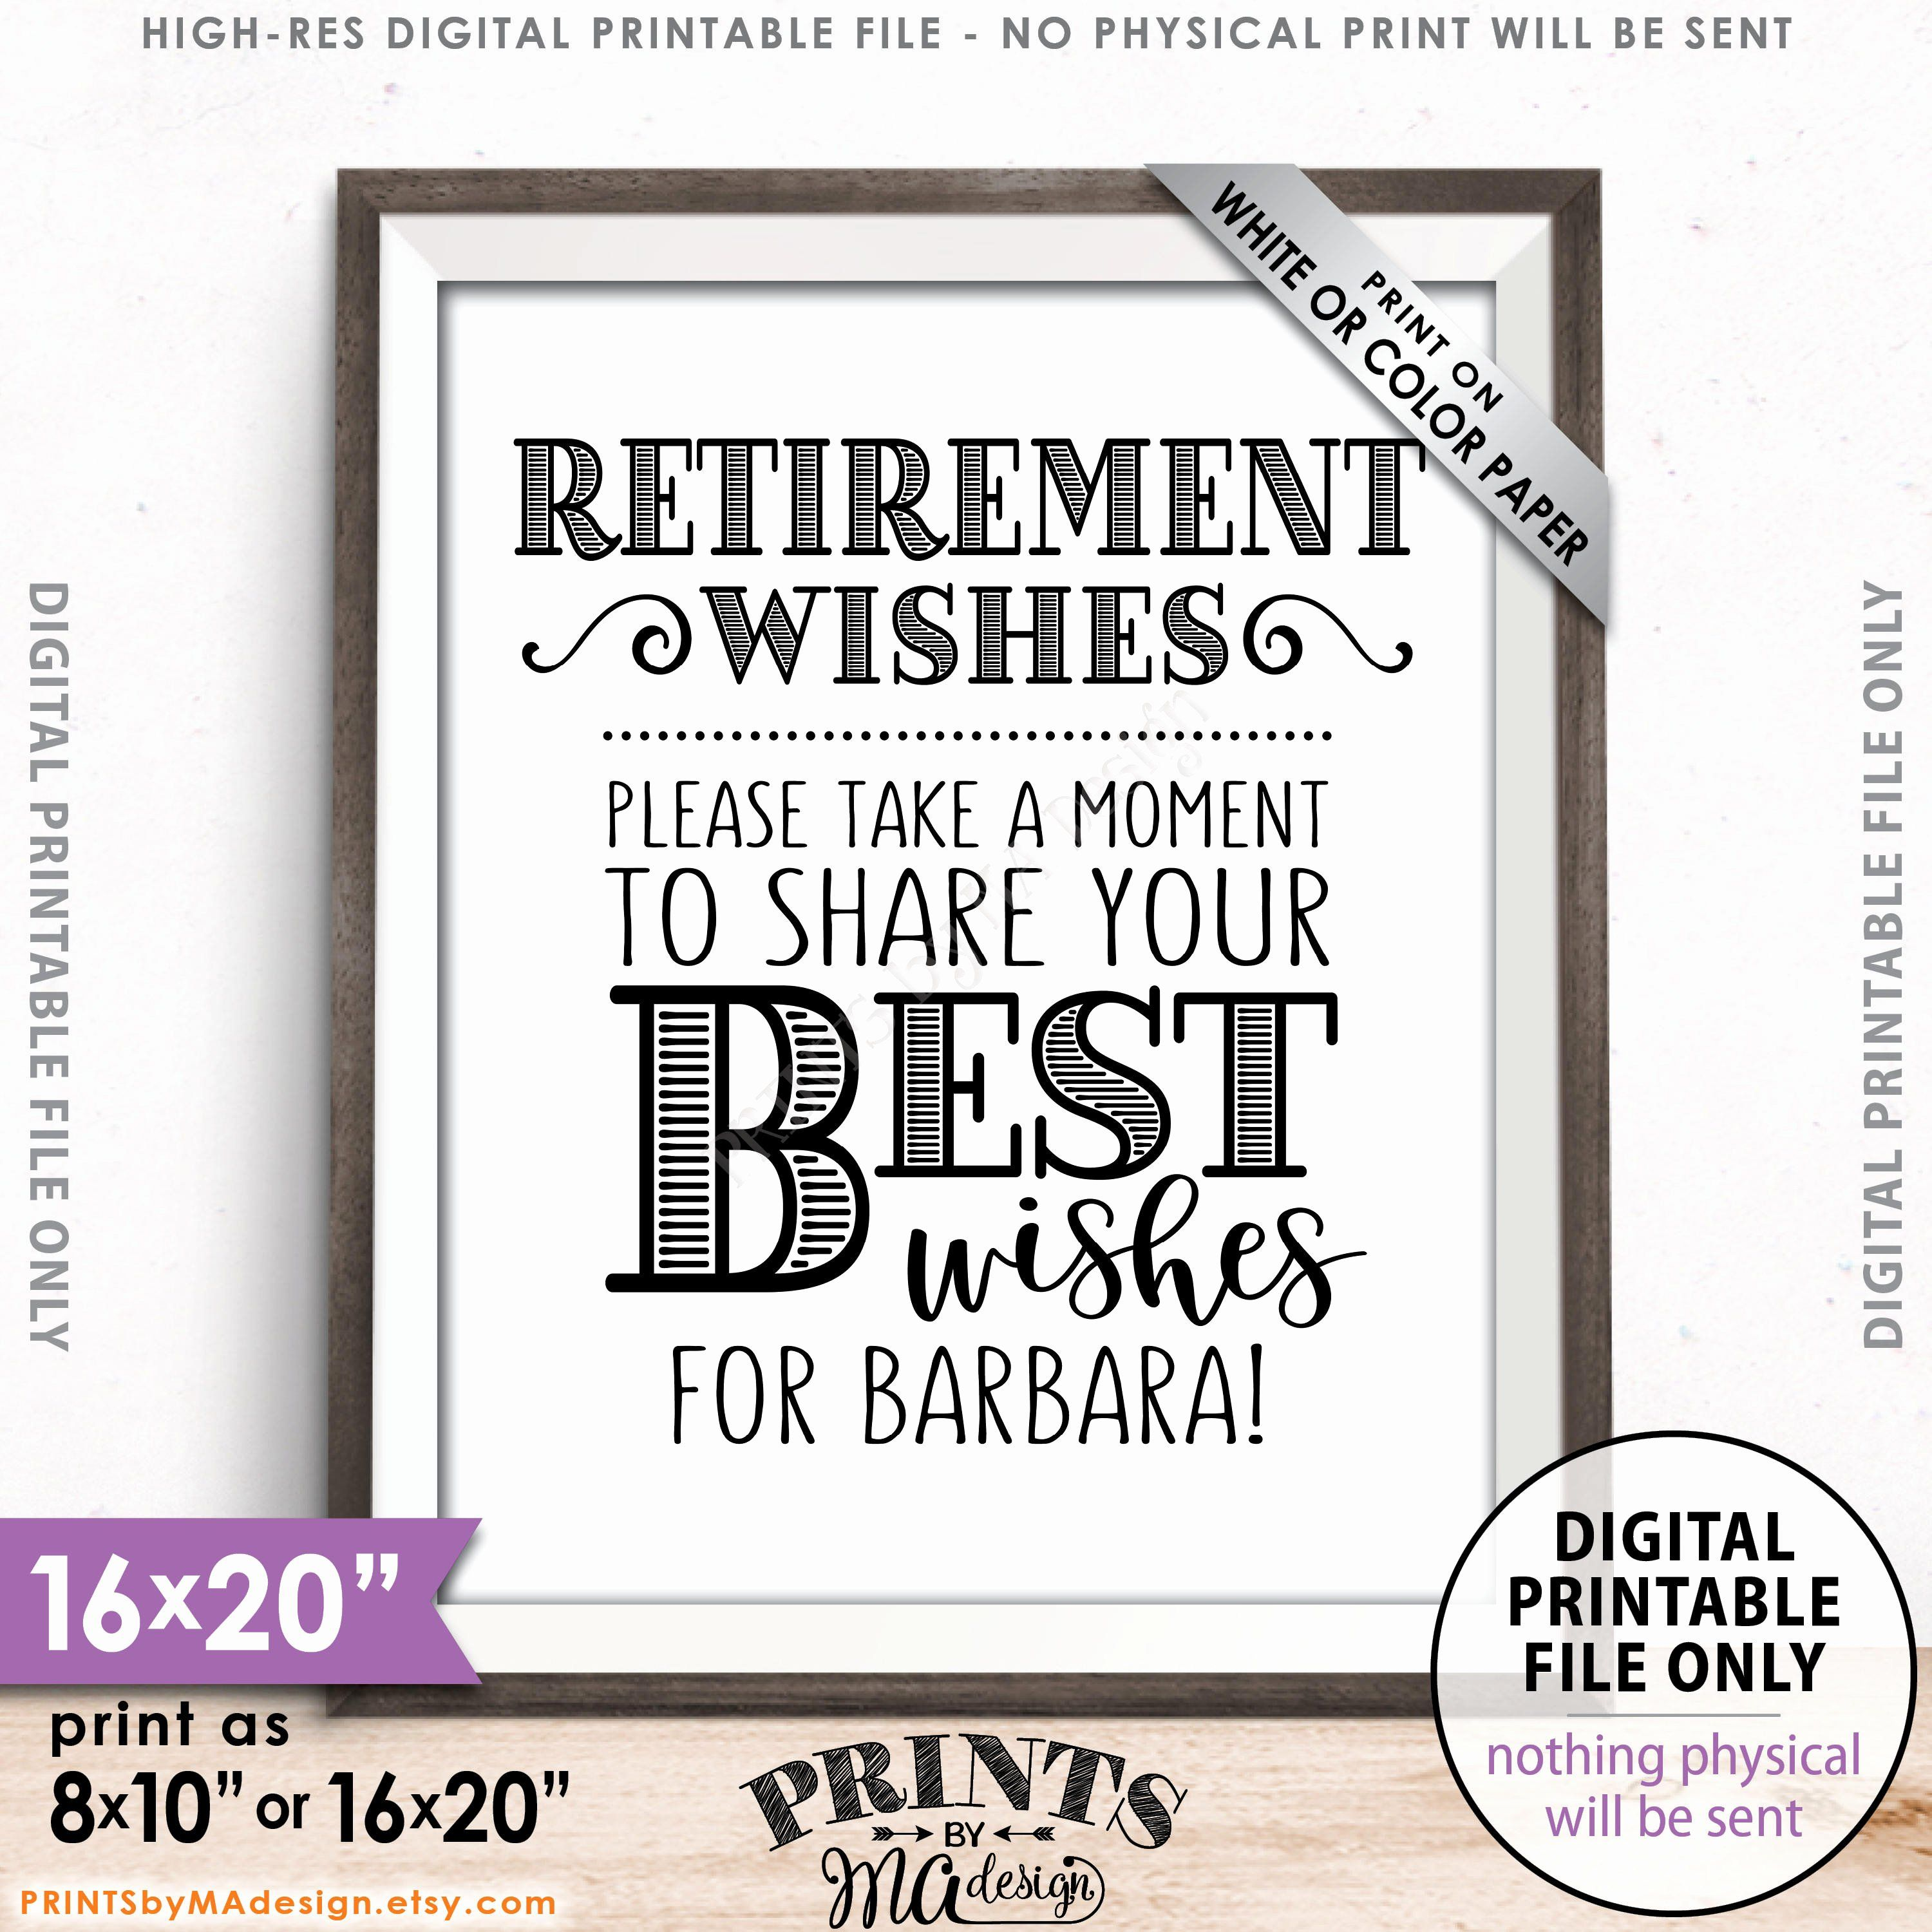 Free Printable Retirement Cards New Free Printable Retirement Signs Koranicken Retirement Cards Retirement Wishes Retirement Invitation Card